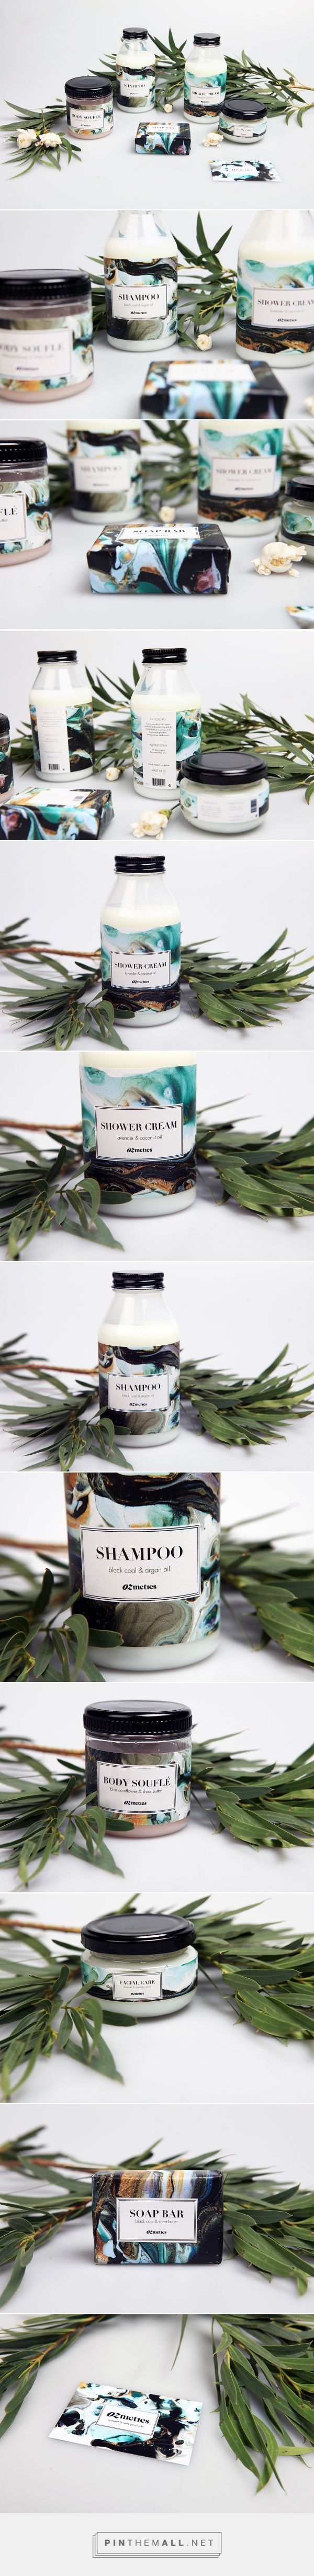 Ozmetics (Student Project) - Packaging of the World - Creative Package Design Gallery - http://www.packagingoftheworld.com/2016/09/ozmetics-student-project.html